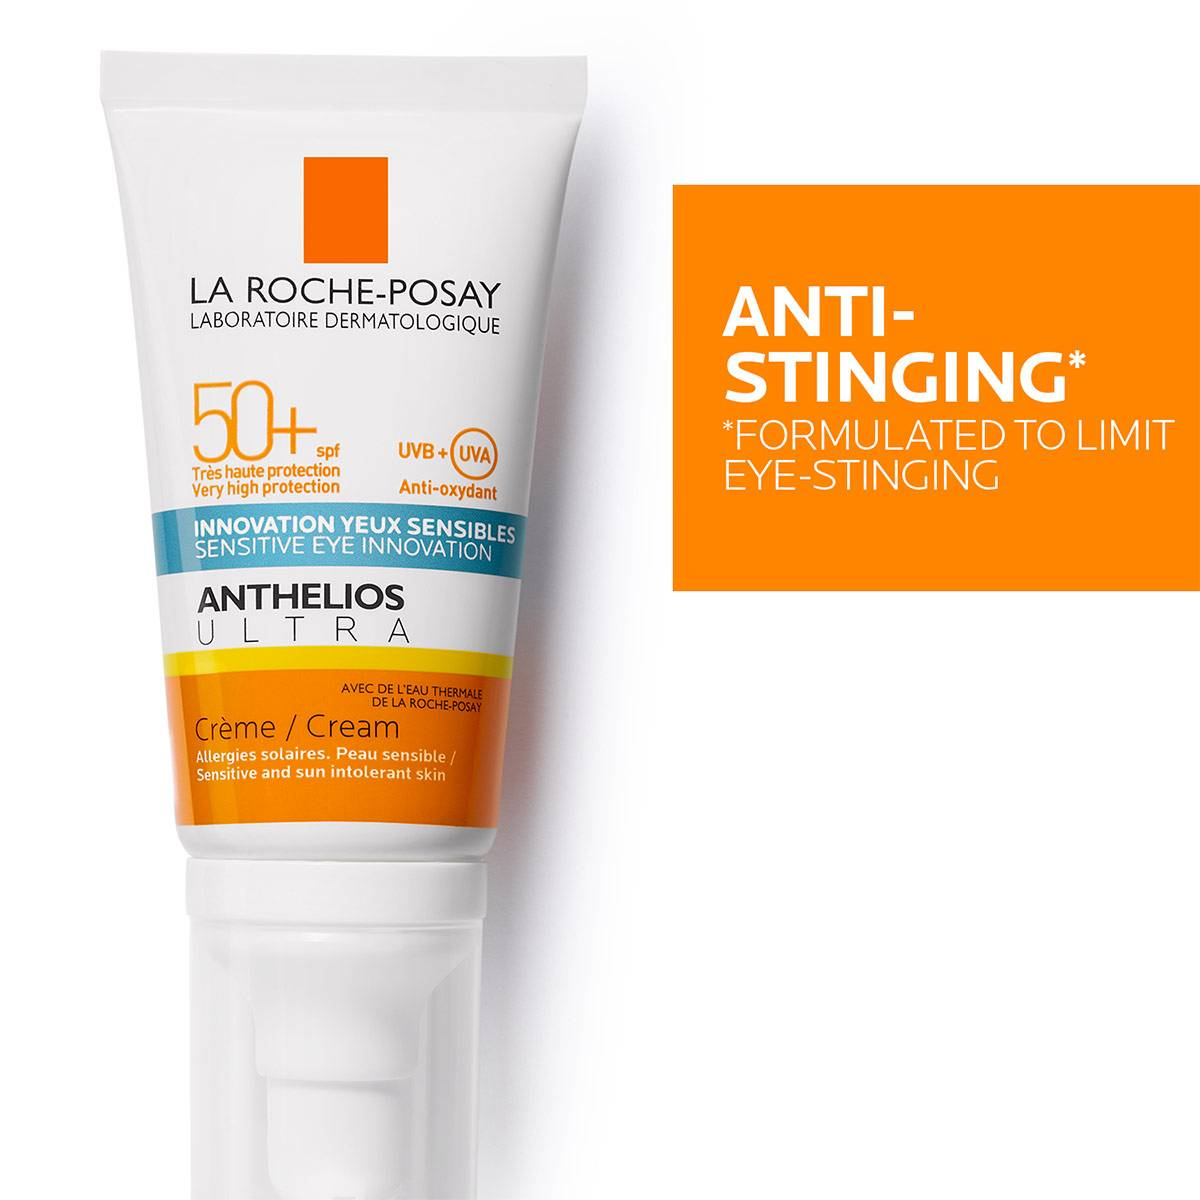 La Roche Posay ProductPage Sun Anthelios Ultra Face Cream Spf50 50ml 3